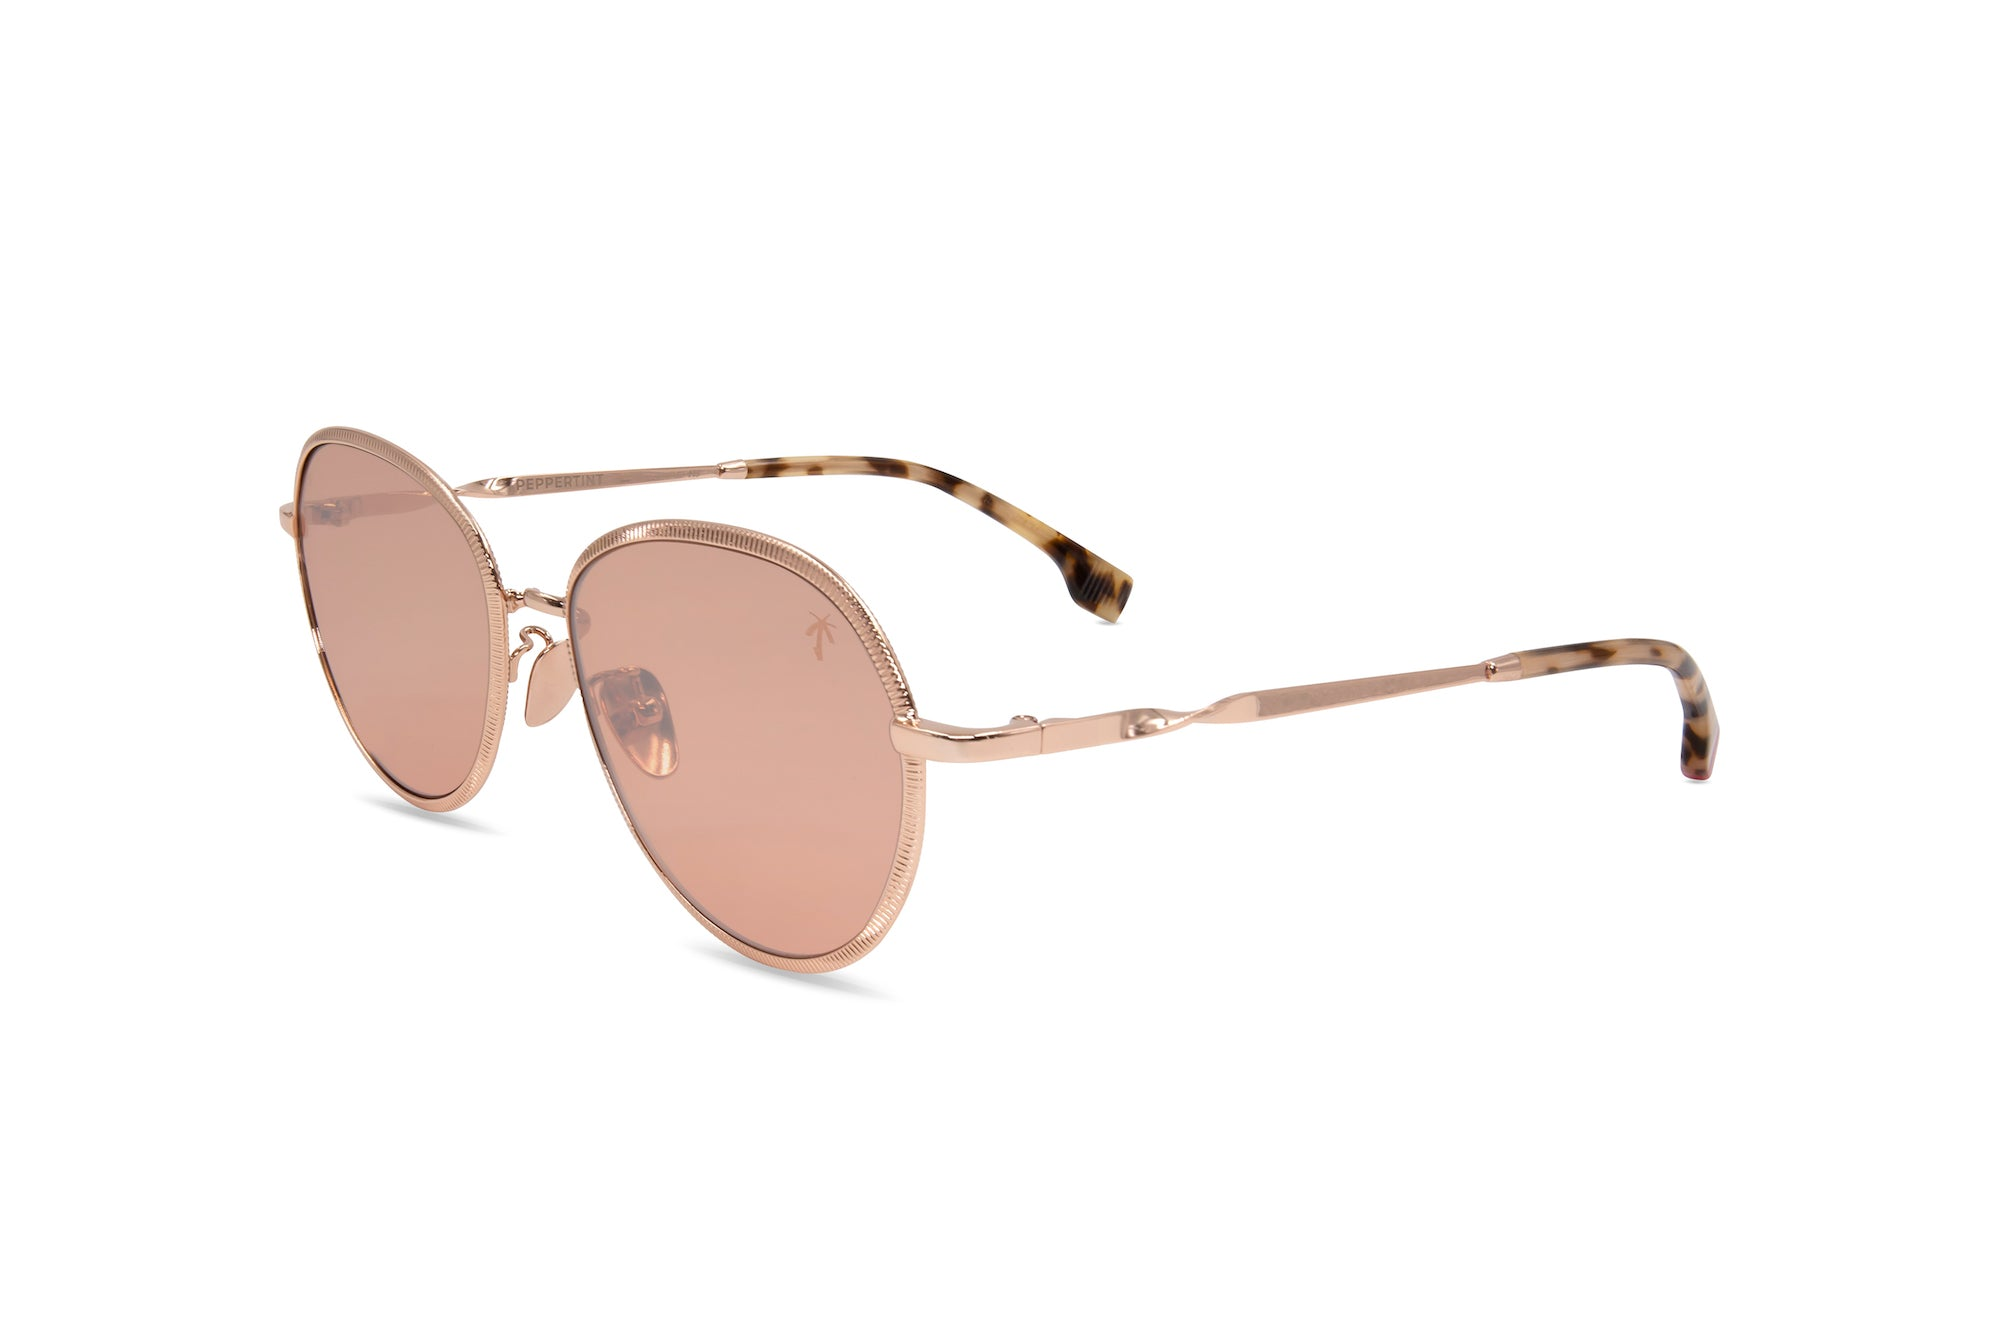 Loyola in Brown (Special Edition) - Peppertint - Designer sunglasses